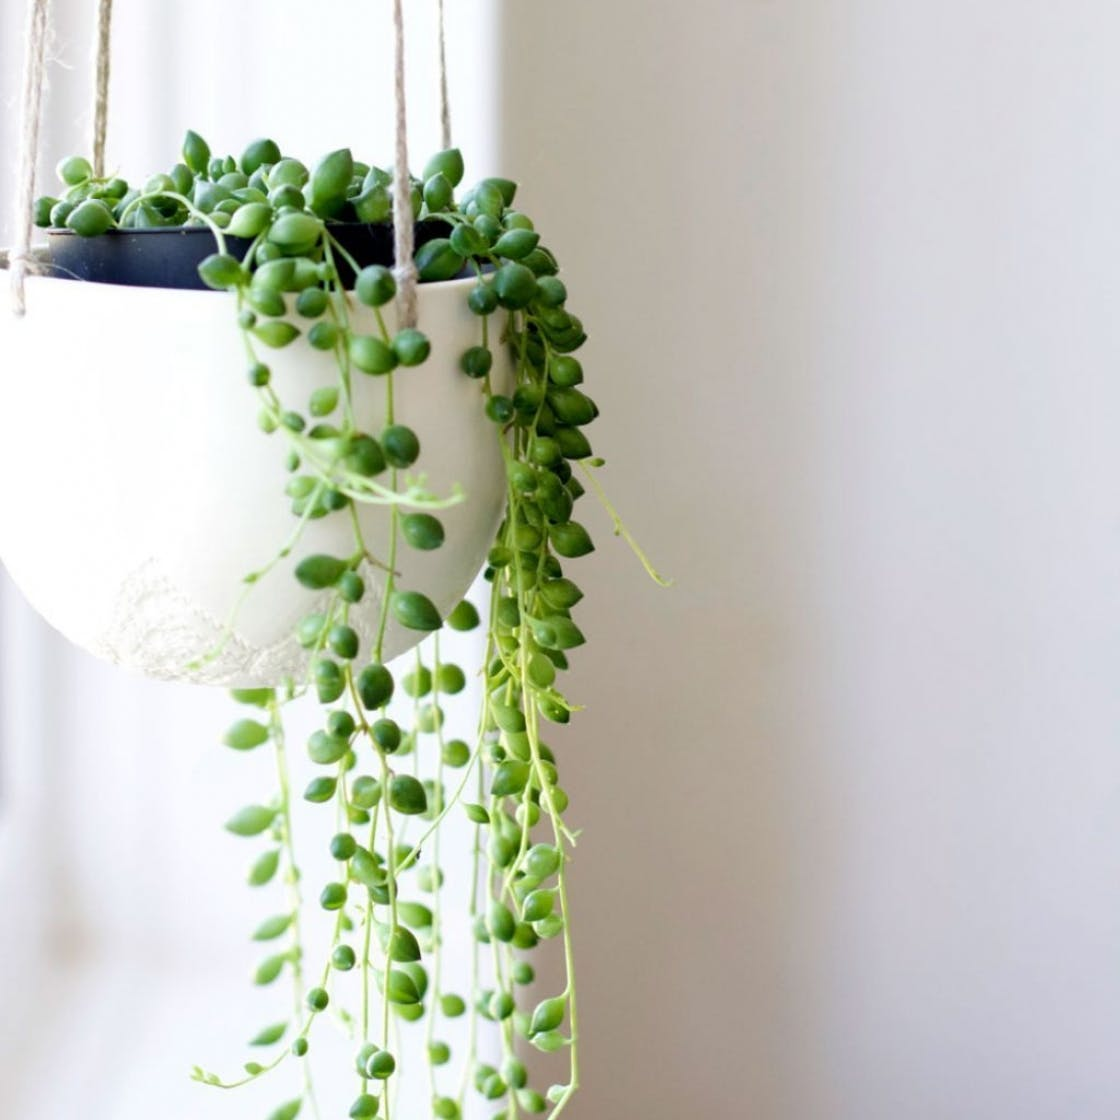 Hanging plants: 7 trailing plants to create an indoor jungle